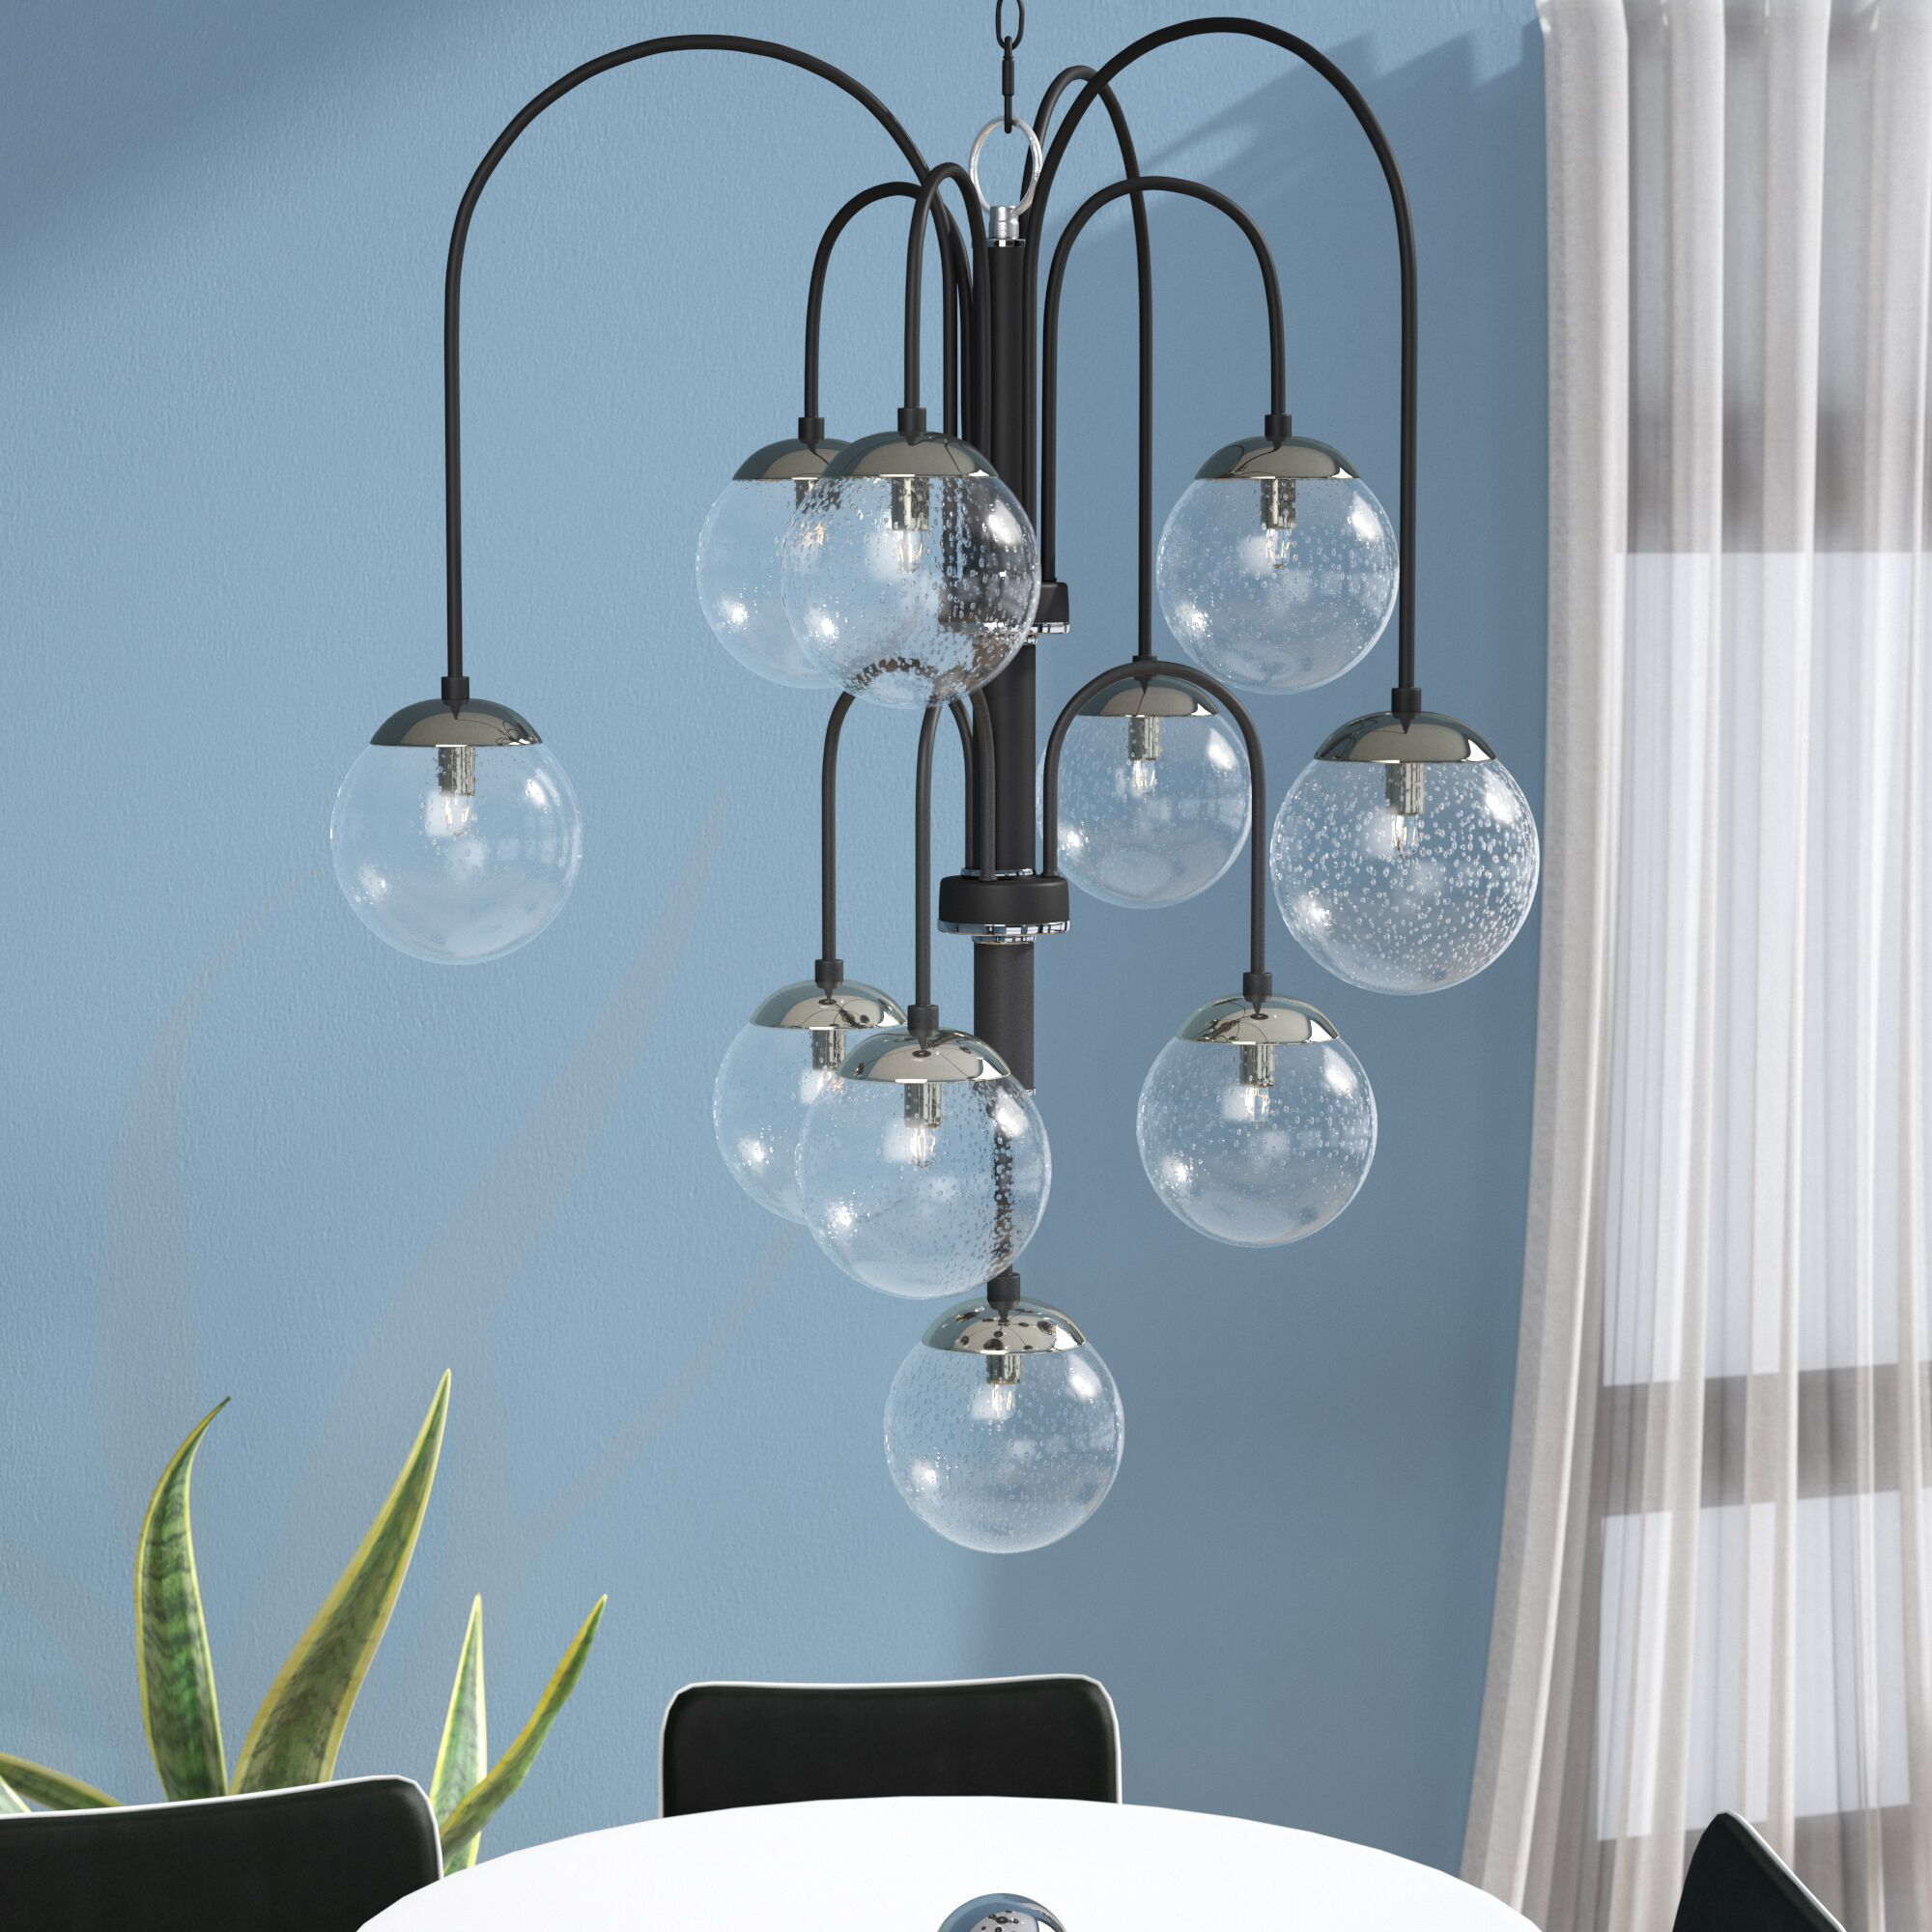 Causeway 10-Light Shaded Chandelier Bulb Type: G9 Xenon, Finish: Textured Black/PolishedNickel